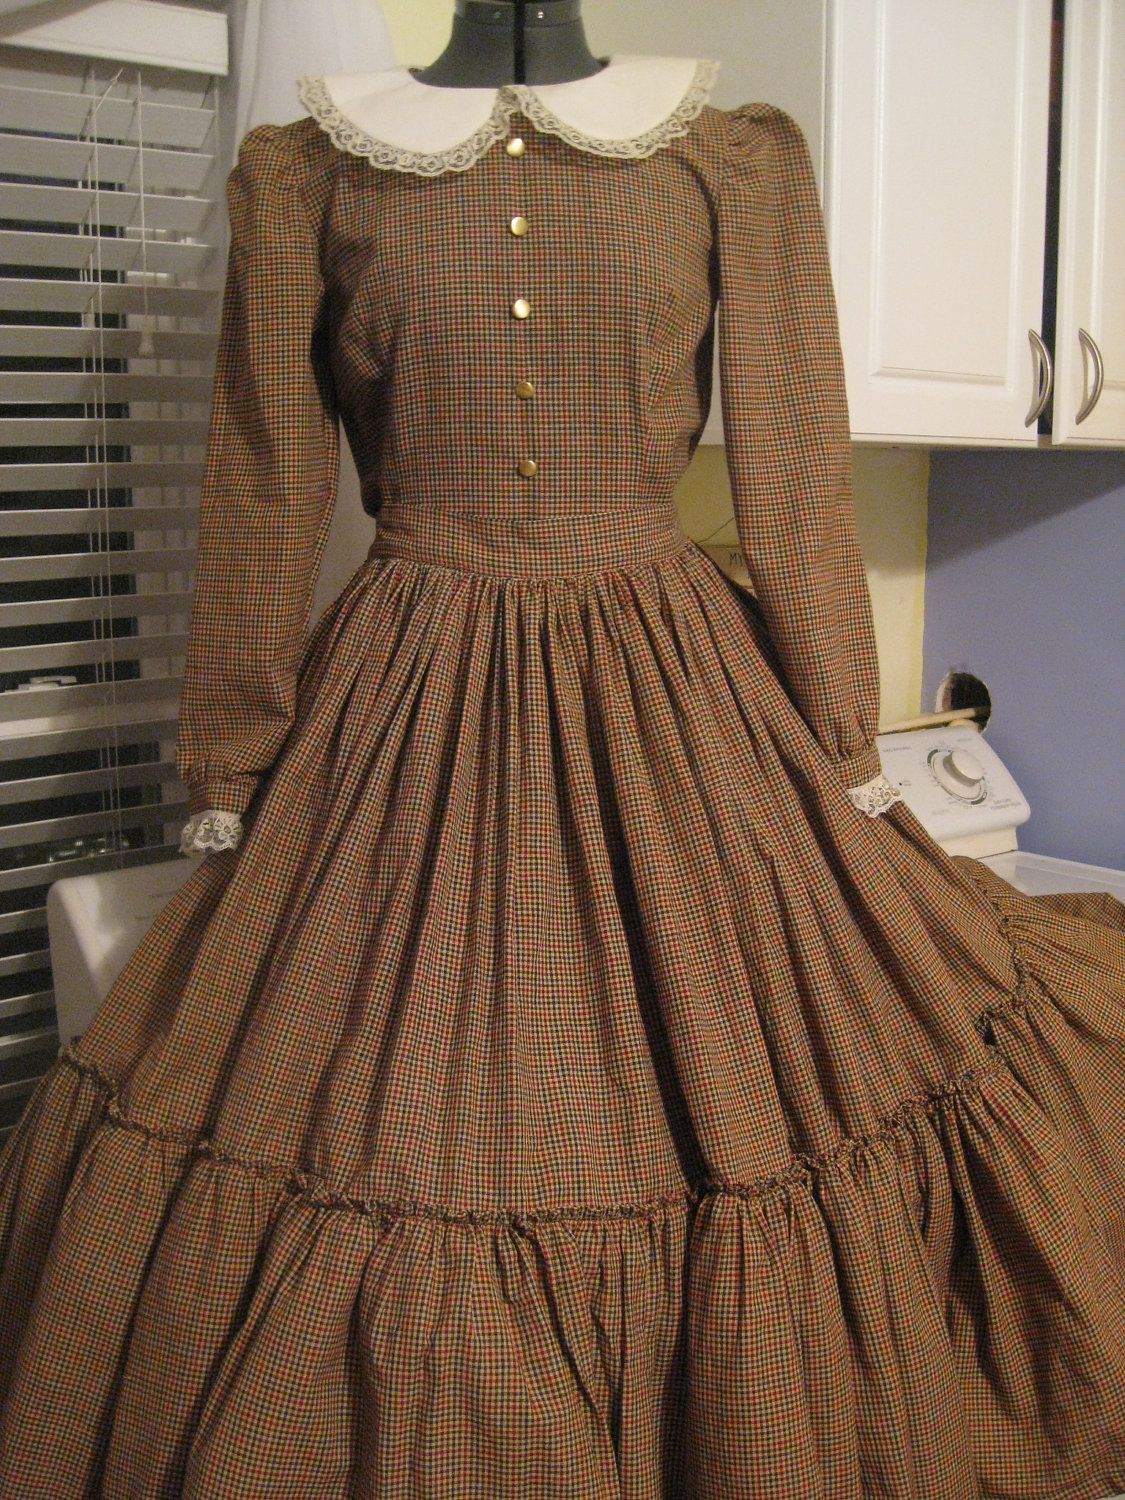 755cb4ab6a228 Early American Dress. Little House On the Prairie style. | Pioneers ...